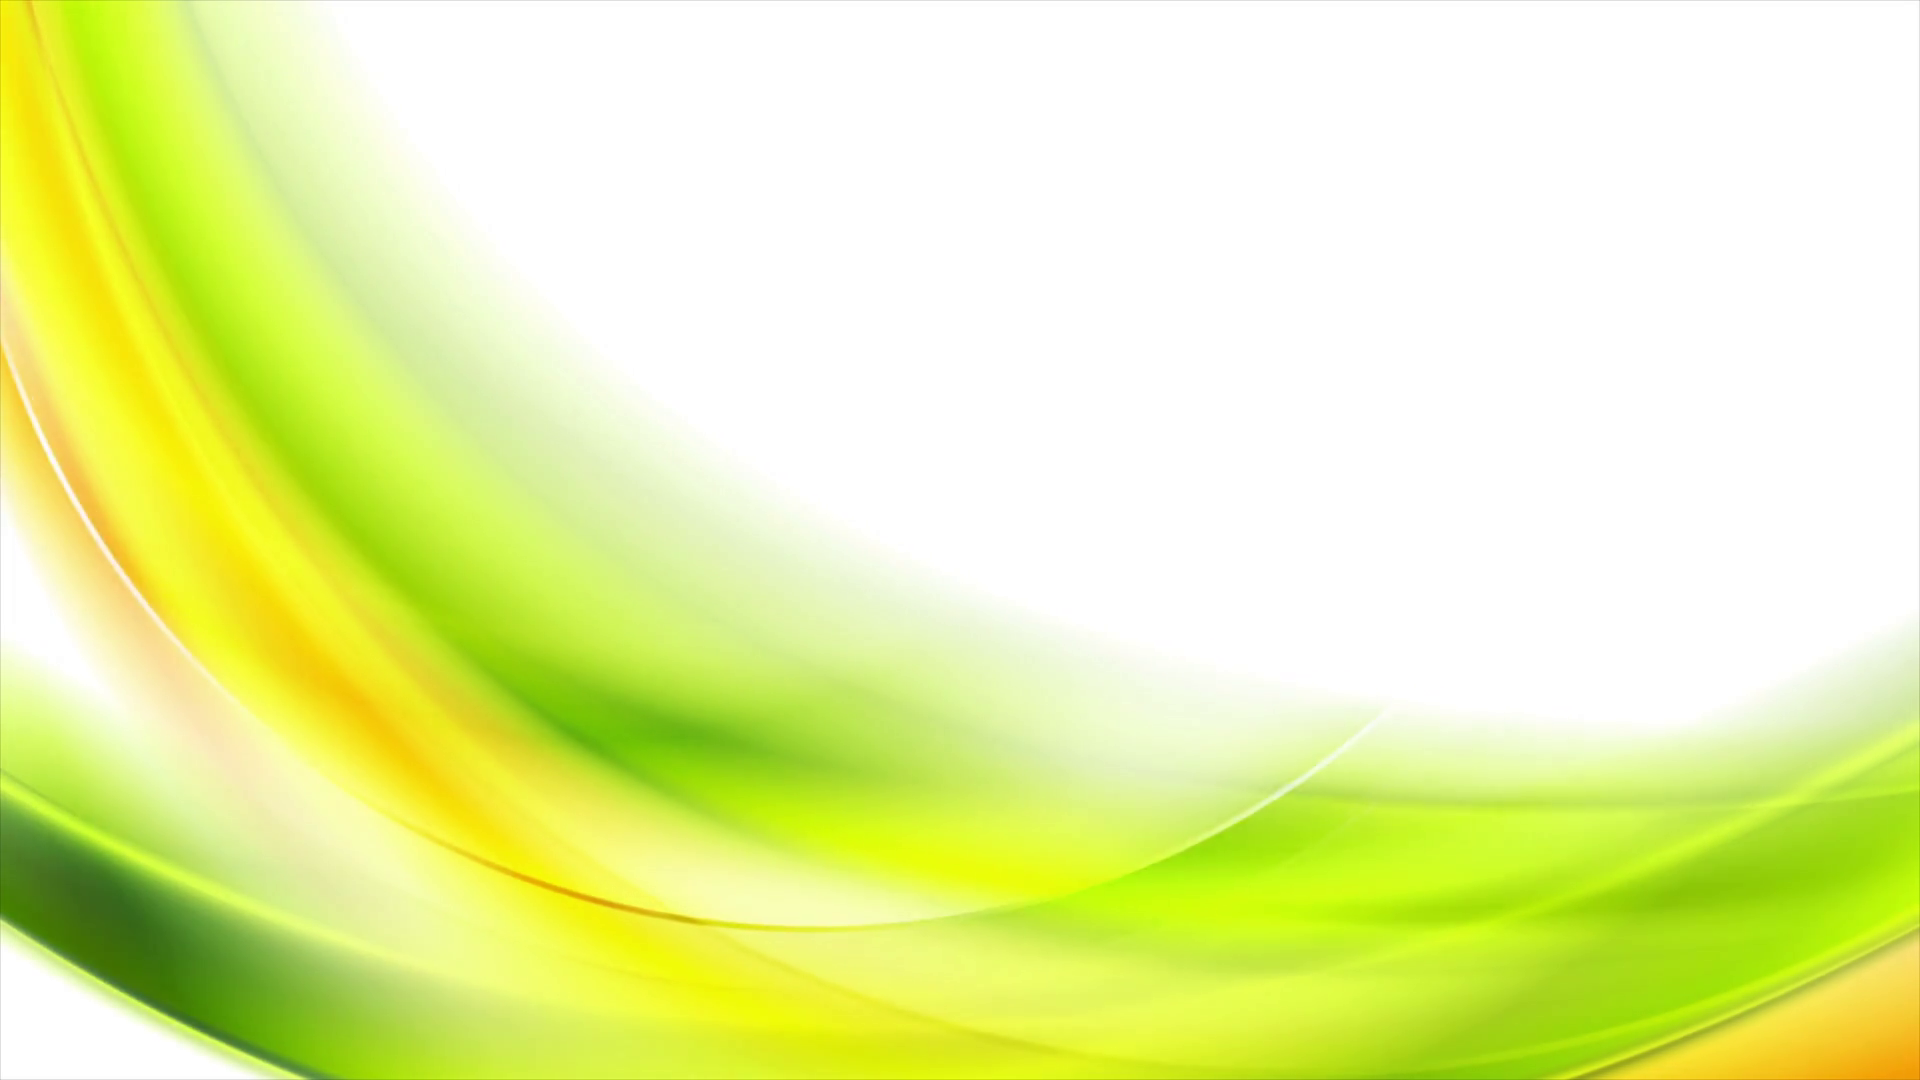 Background Hd Green Png - Light Green Background Png , (+) Pictures - trzcacak.rs